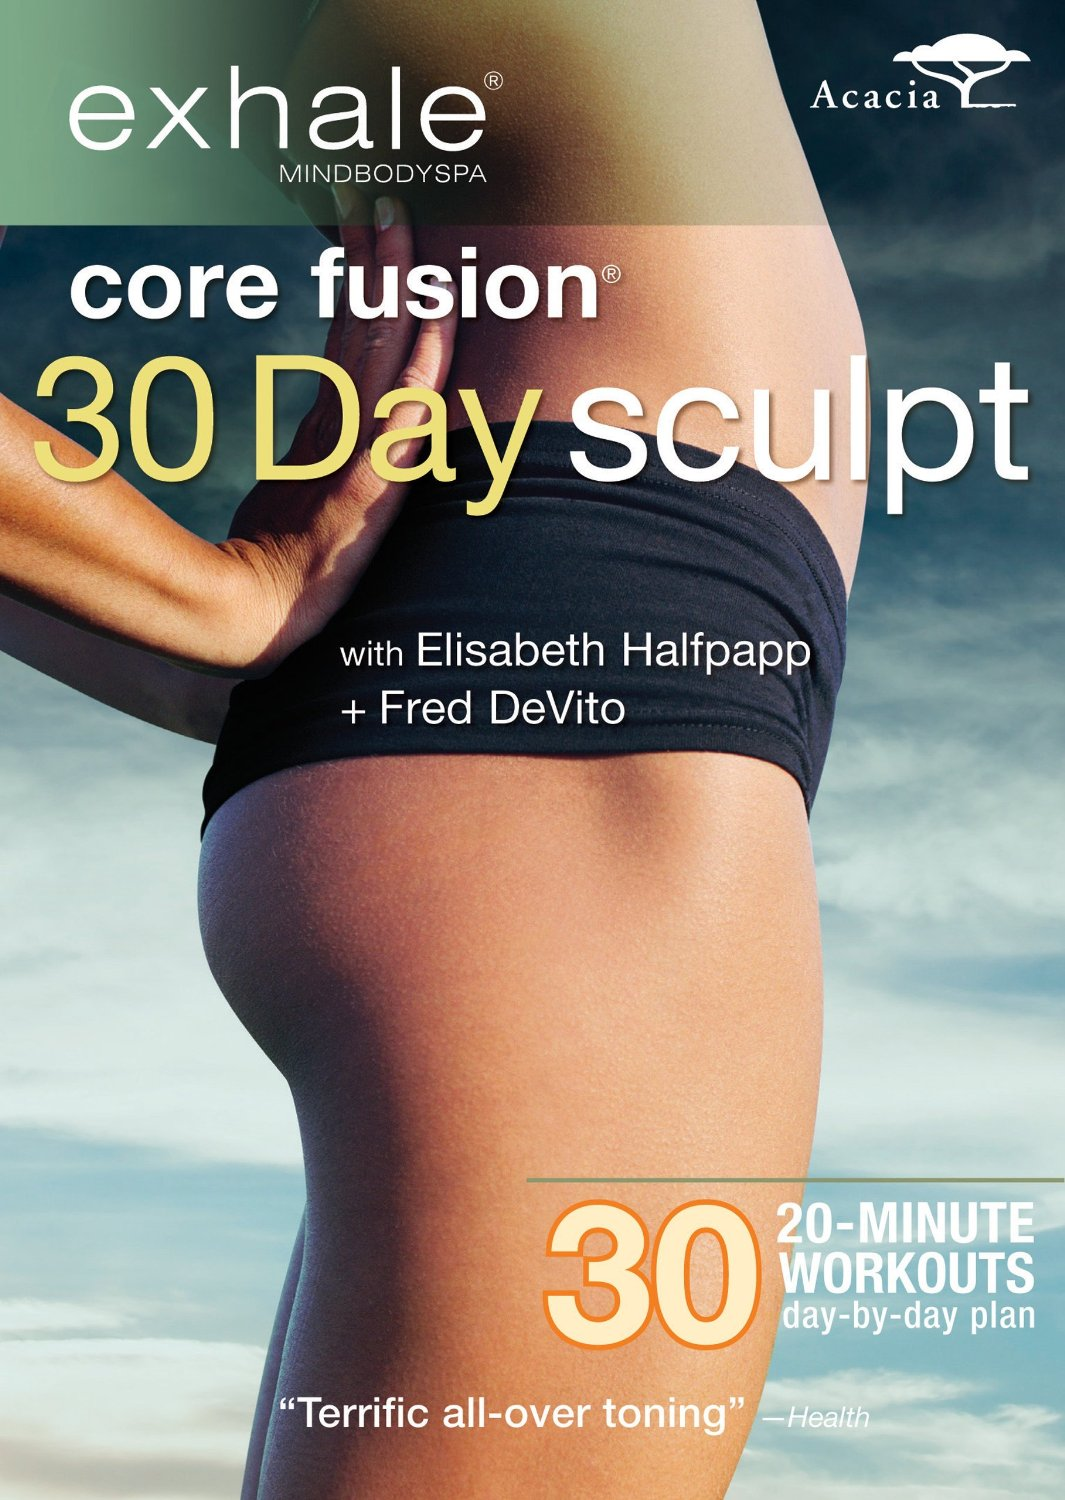 91gLIB40neL. SL1500  3 Twenty Minute Workout DVDs